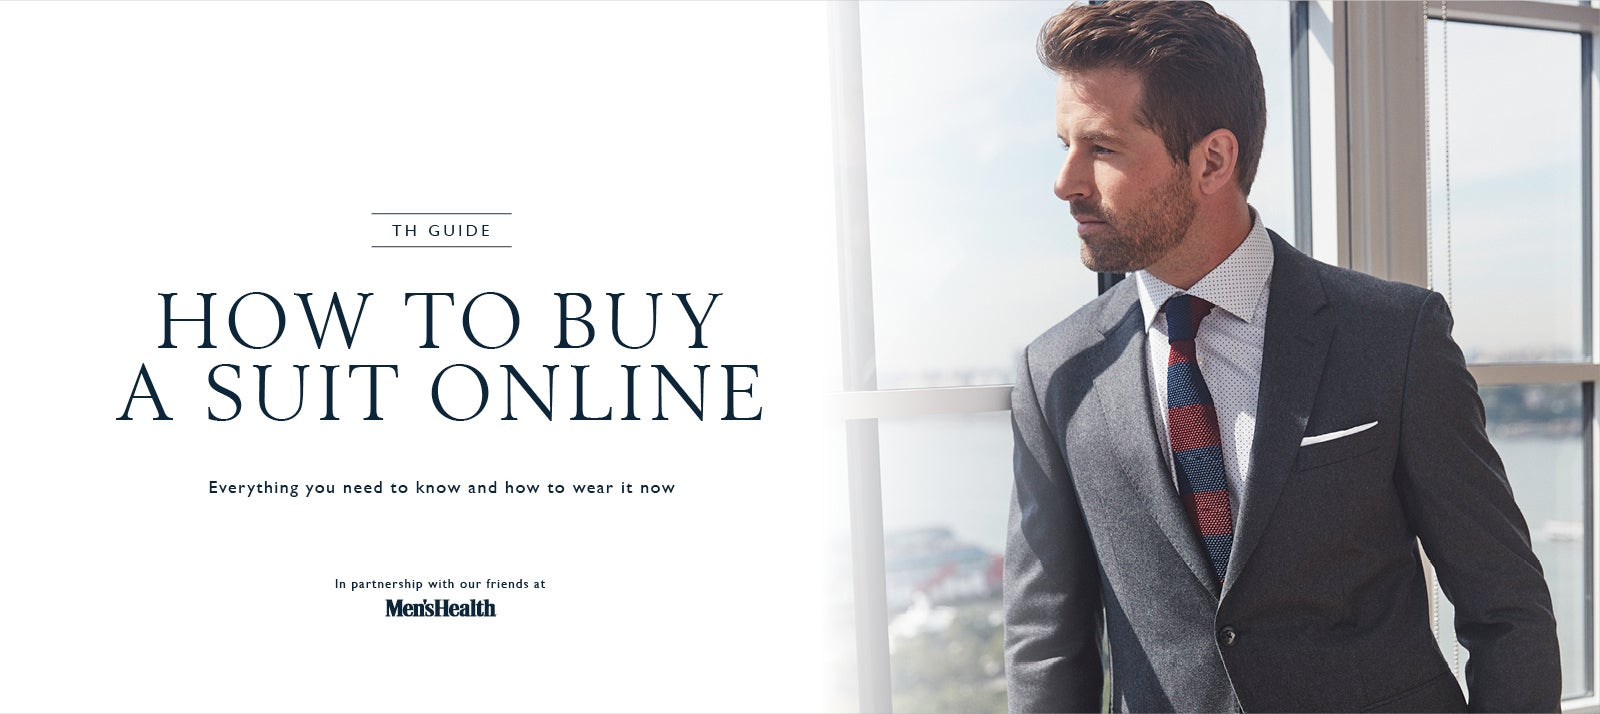 How To Buy A Suit Online With Mens Health | Tommy Hilfiger USA